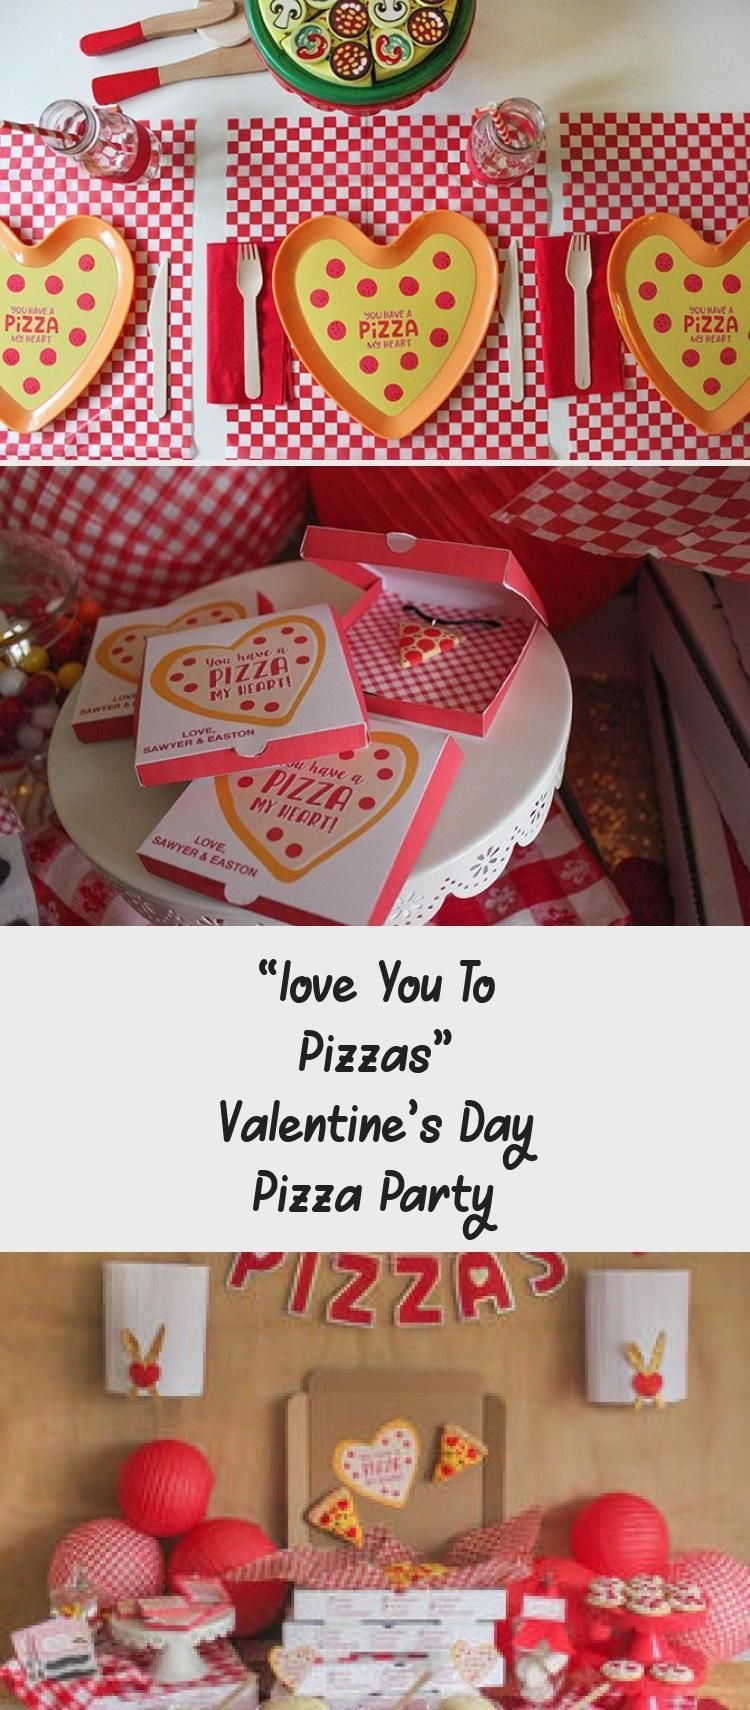 Valentine's Day pizza party, valentines day, you have a pizza my heart, love you to pizzas, partnership, oriental trading, free printable, pizza valentines, kids pizza party, make your own pizza, pizza party, just add confetti, pizza box printable, mustache printable, creative valentines, little chefs, pizza chefs #valentinesdayVintage     You may of course begin decorating your house at any time but Particularly al... #Day #love #party #Pizza #Pizzas #Valentines #Valentines day photography